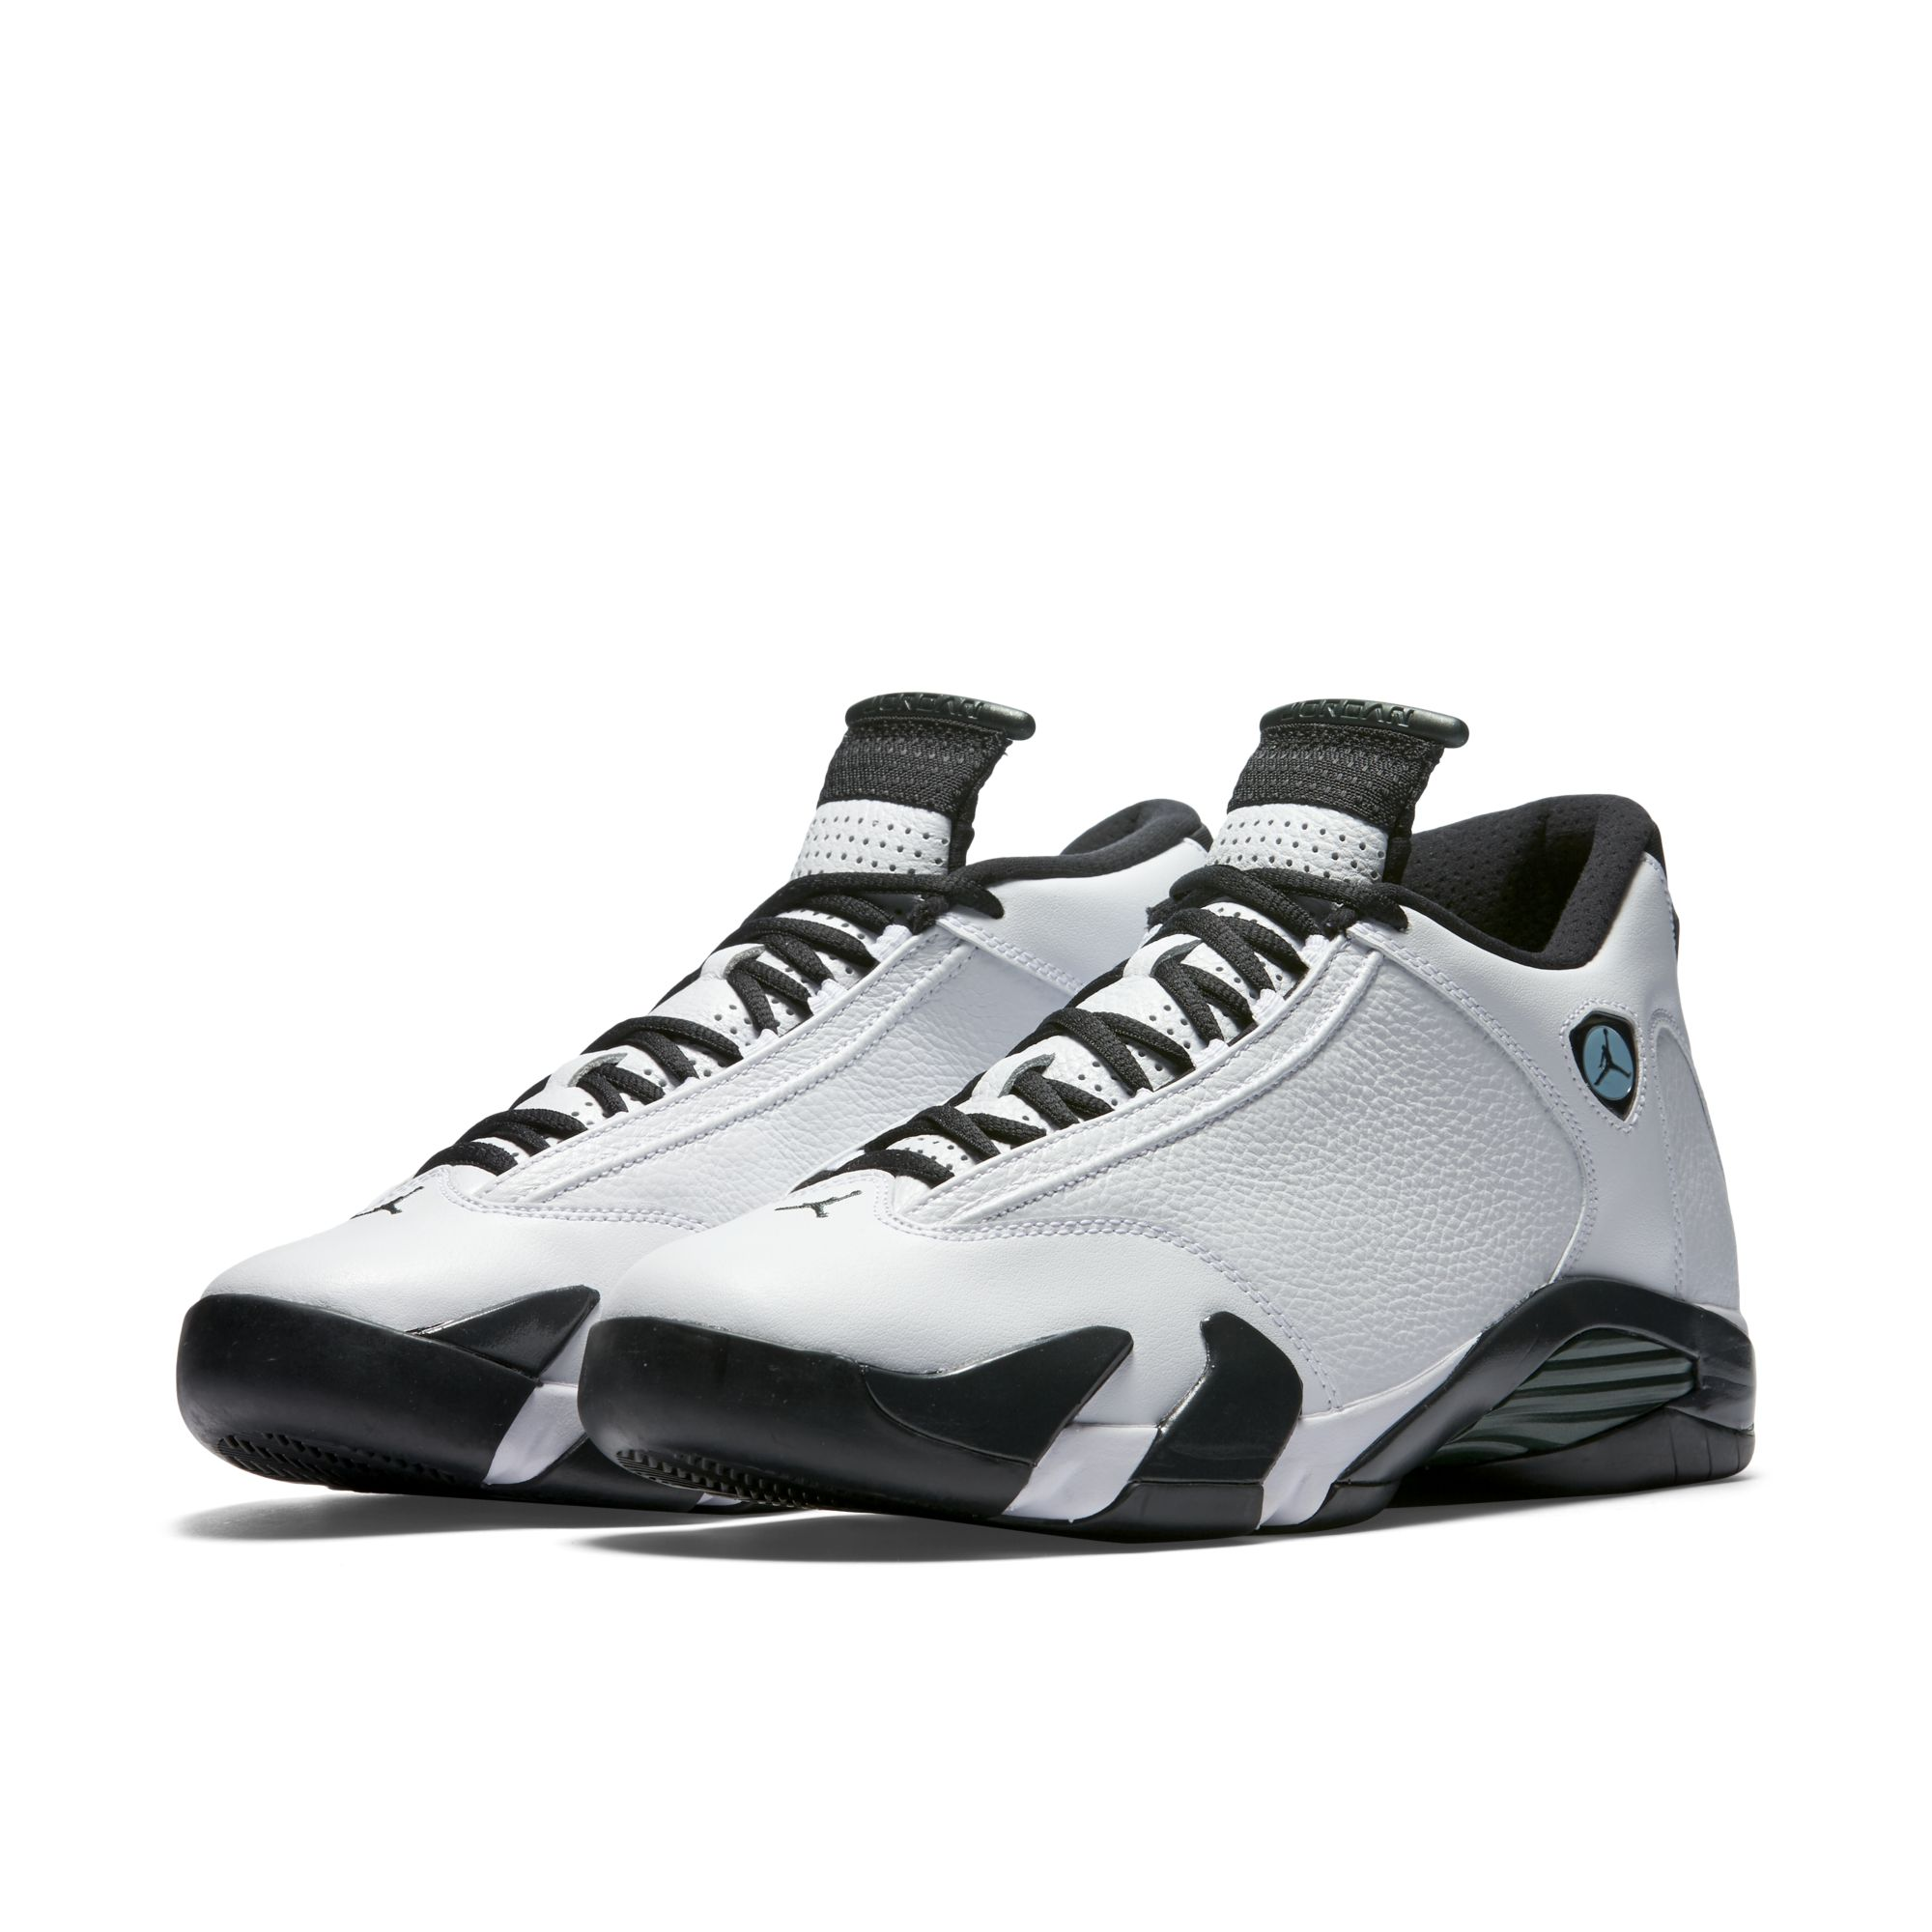 premium selection 6d0b3 5a39f Official Look at the Air Jordan 14 Retro 'Oxidized Green ...